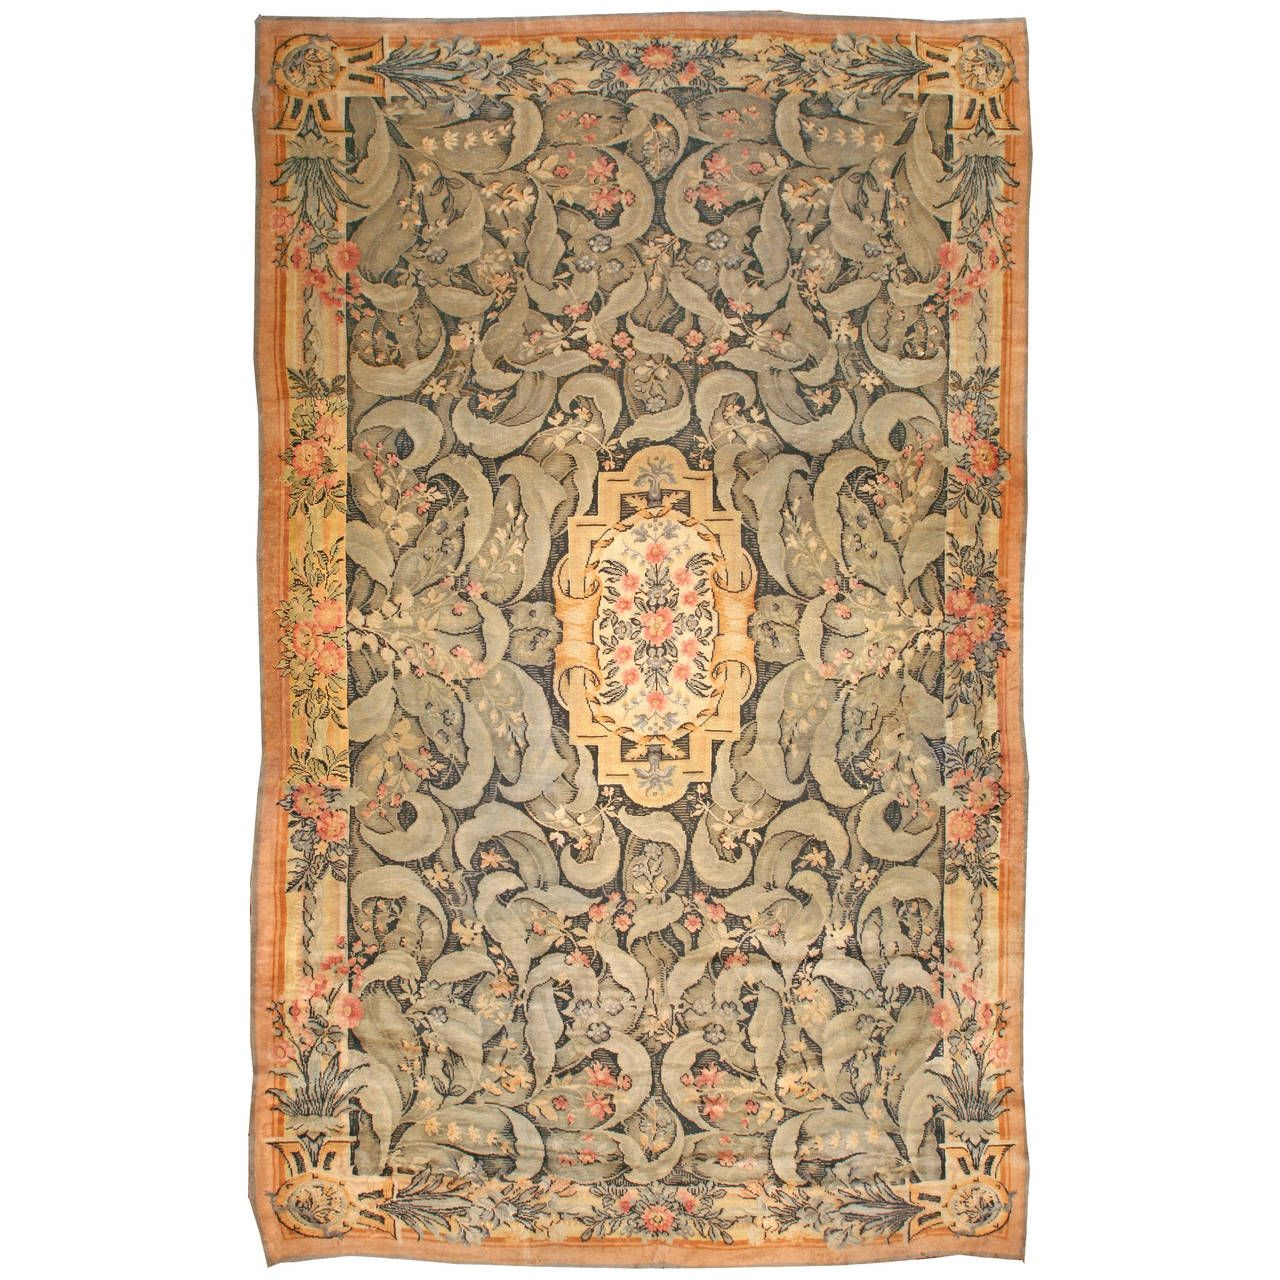 Antique Savonnerie Rug In 2020 Rugs Rugs On Carpet Antiques